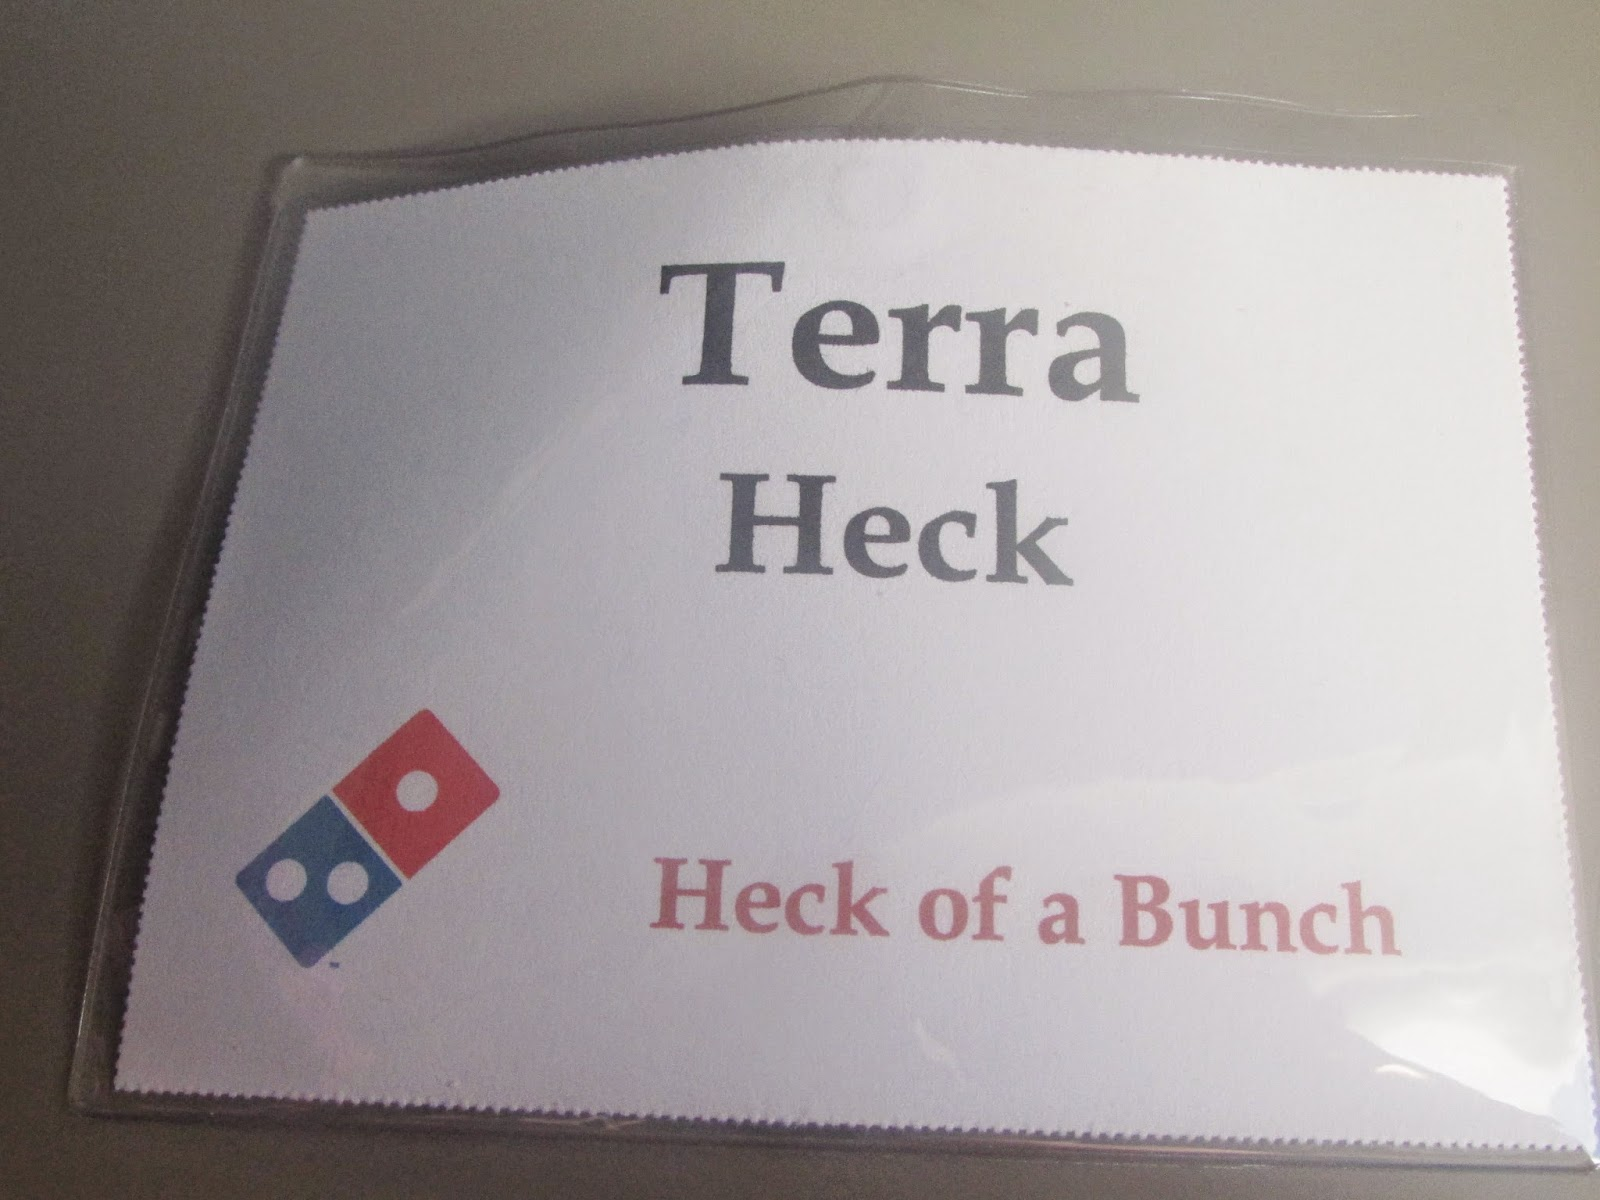 Heck Of A Bunch: Behind the Scenes of Domino\'s Pizza - #DPZBloggerDay14